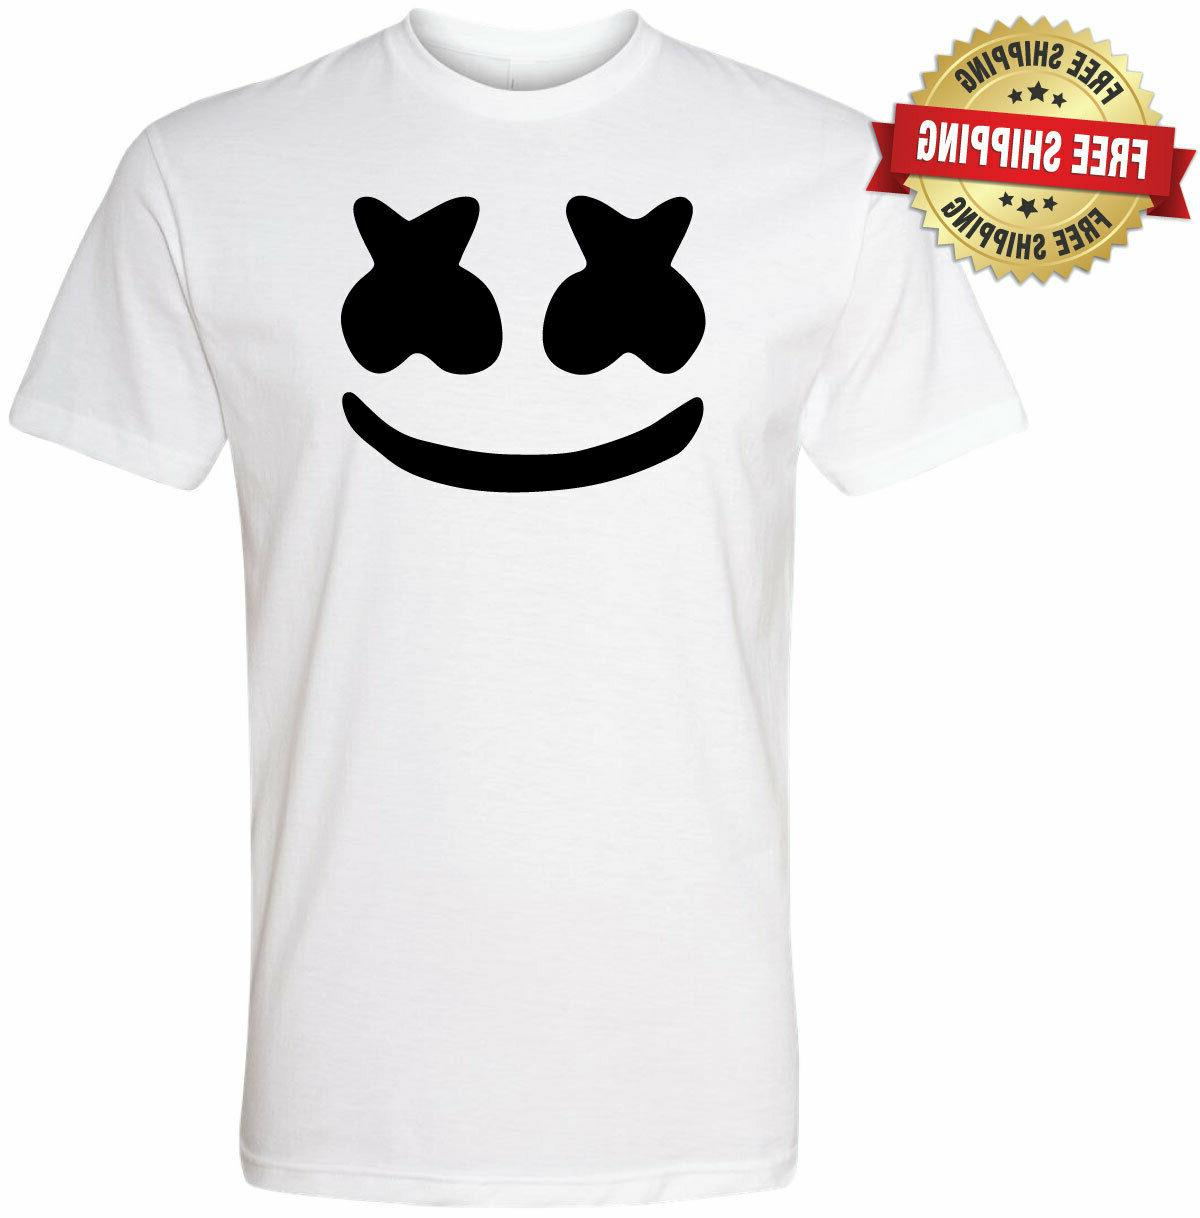 marshmello dj youth and adult unisex t